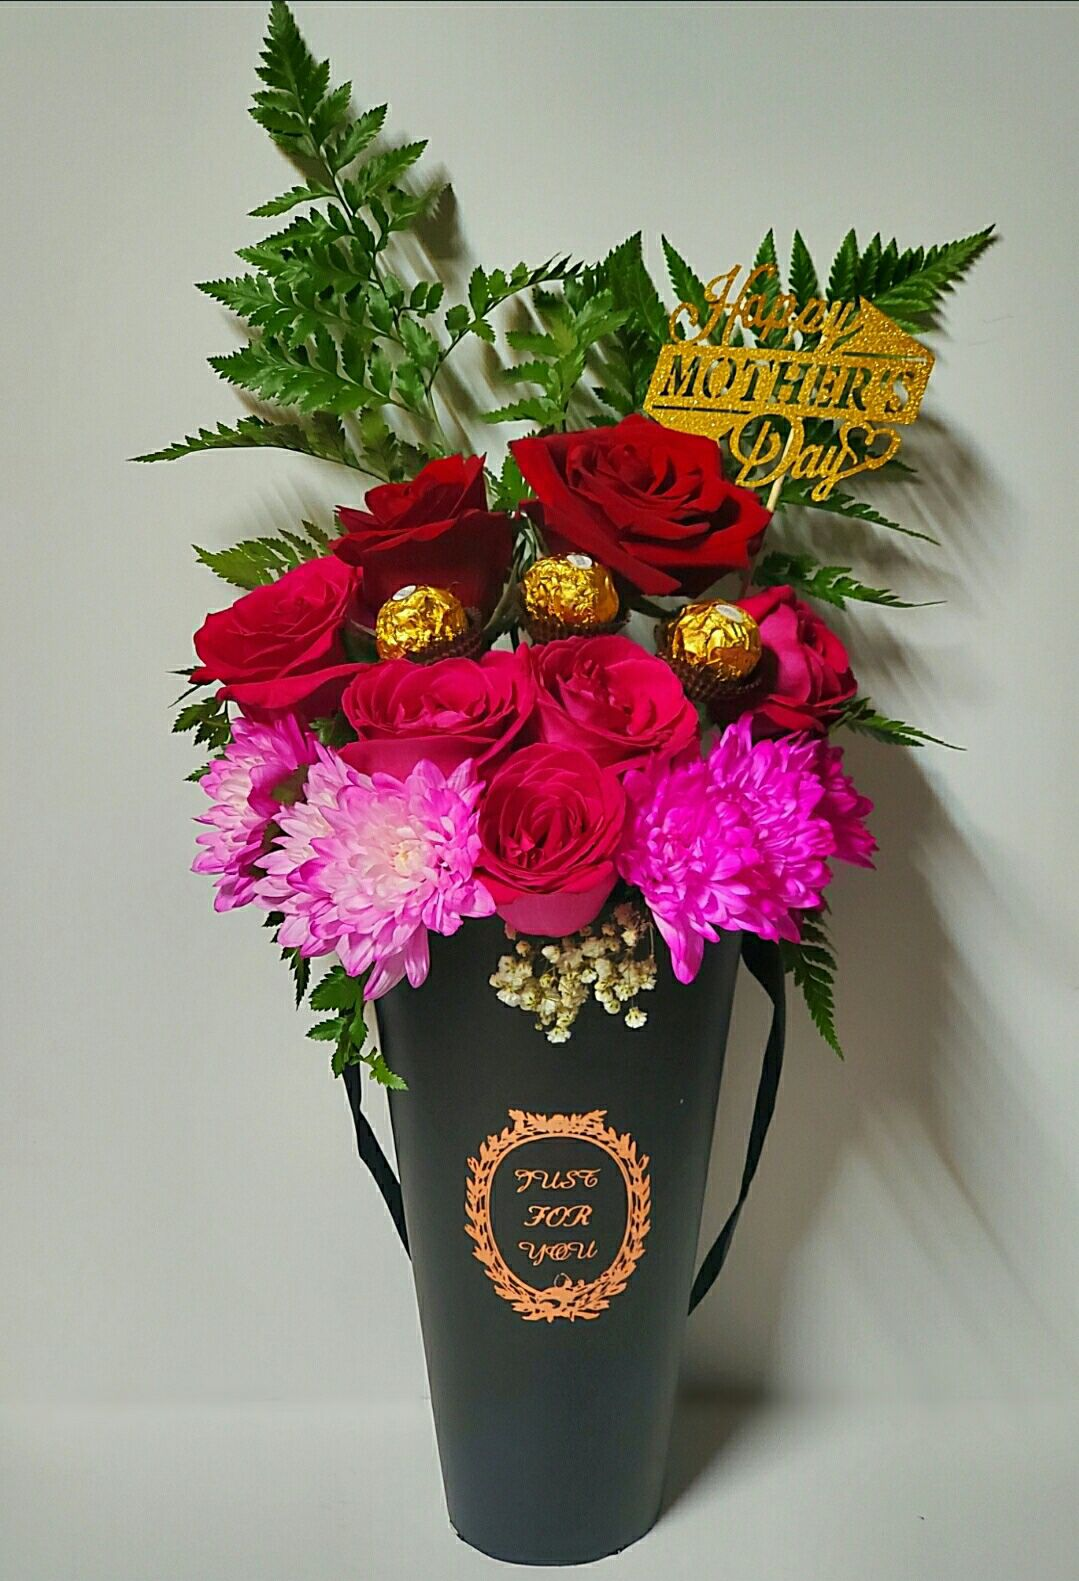 Arrangement of flowers for Mother's Day